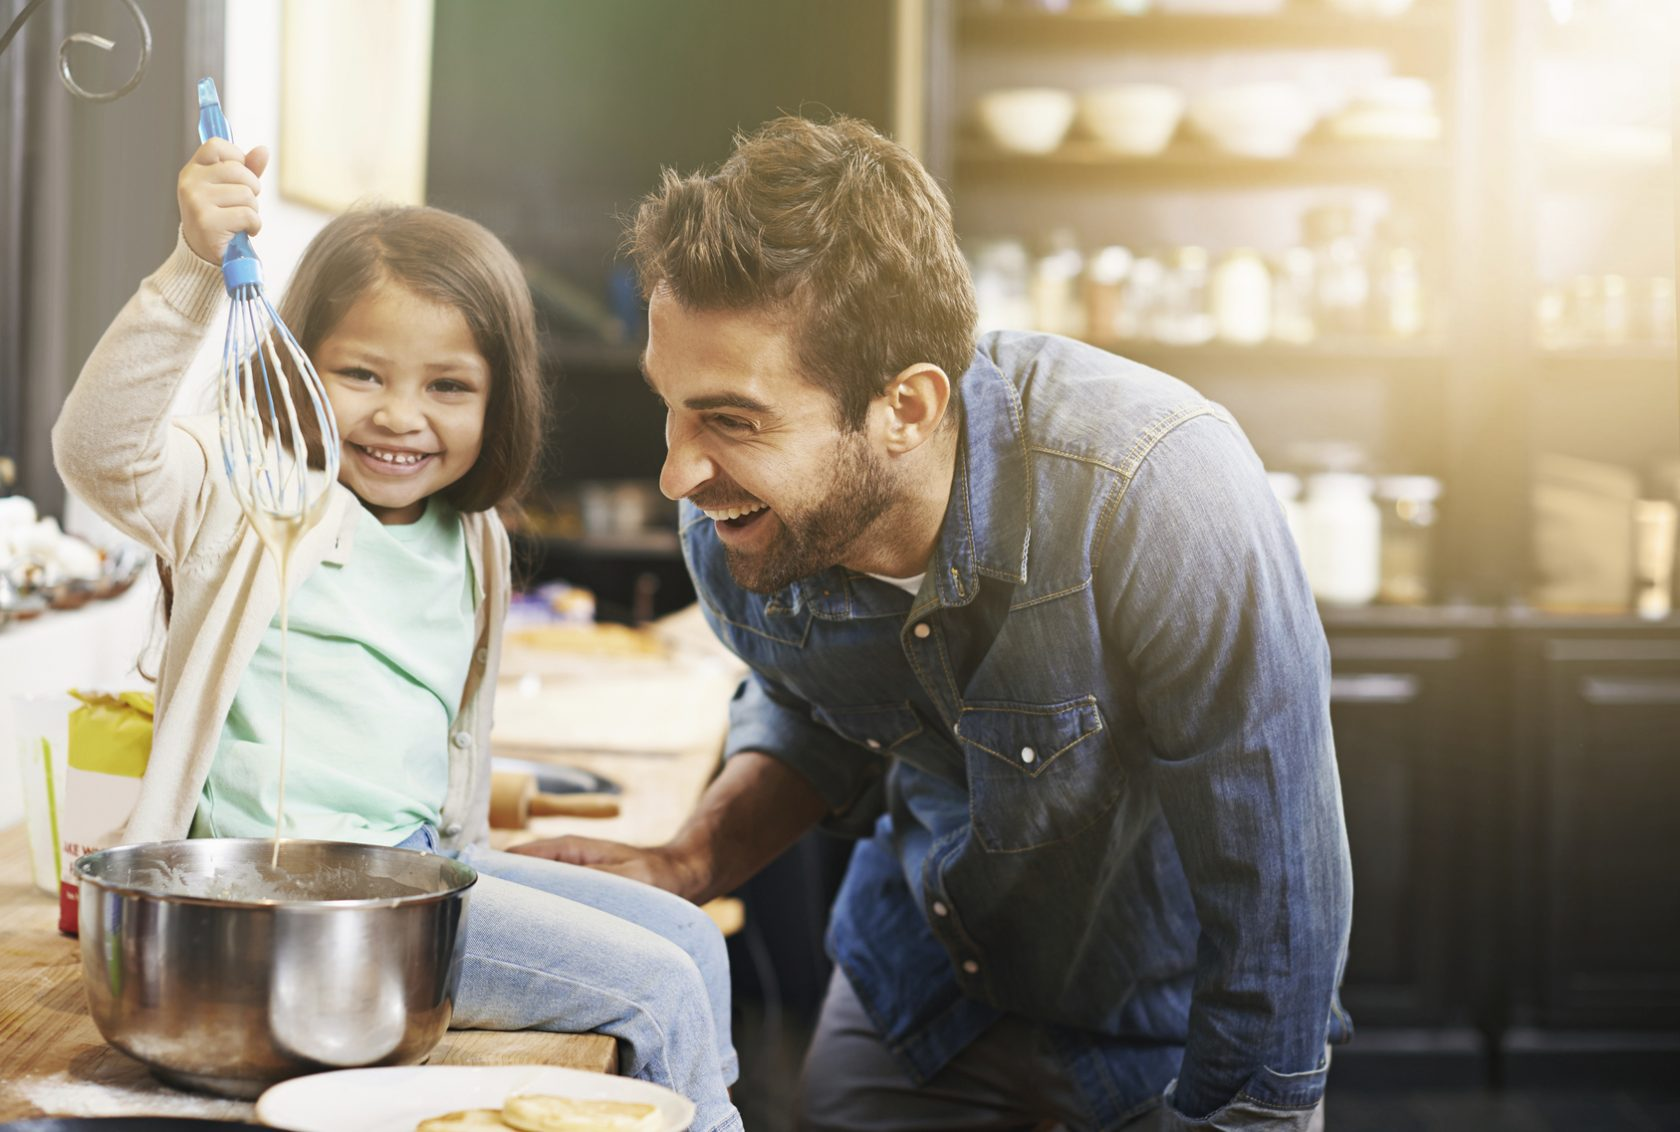 It's good to make time to cook and prepare meals with your child